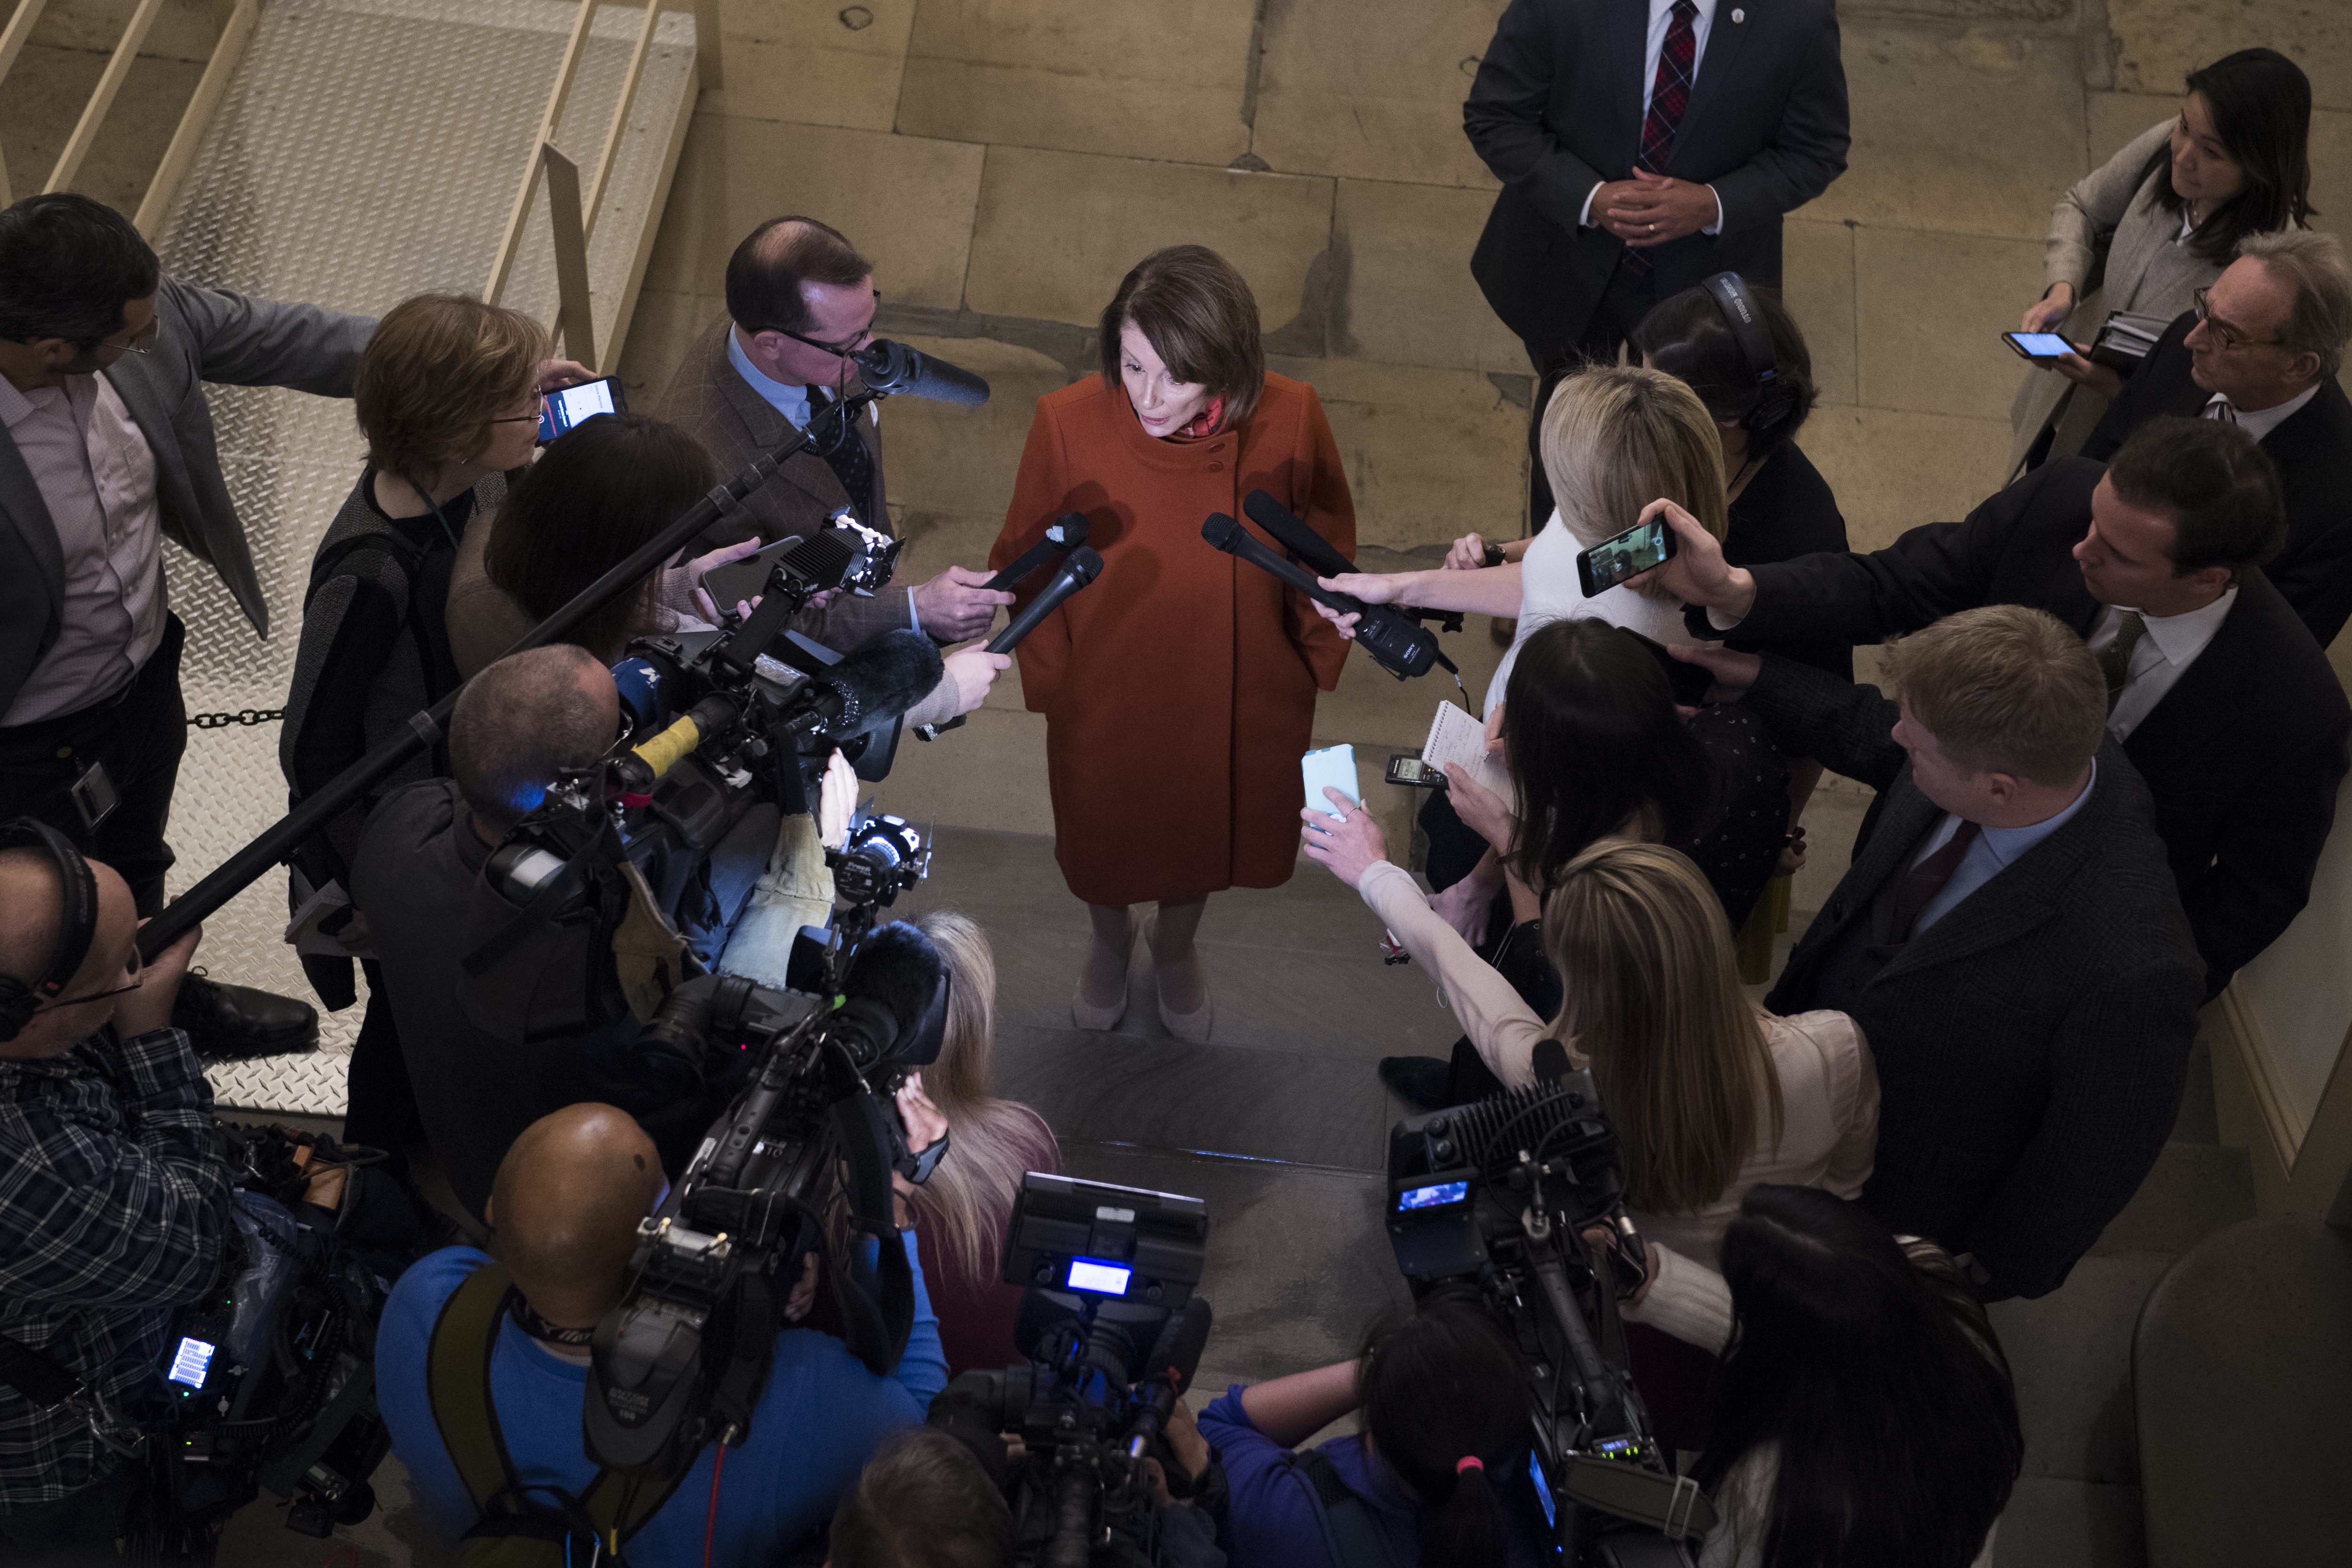 House Minority Leader Nancy Pelosi, D-Calif., talks with reporters in the Capitol after arriving back from a White House meeting with President Trump, Vice President Pence and Senate Minority Leader Charles Schumer, D-N.Y., about the border wall and a potential government shutdown on December 11, 2018.(Photo By Tom Williams/CQ Roll Call)